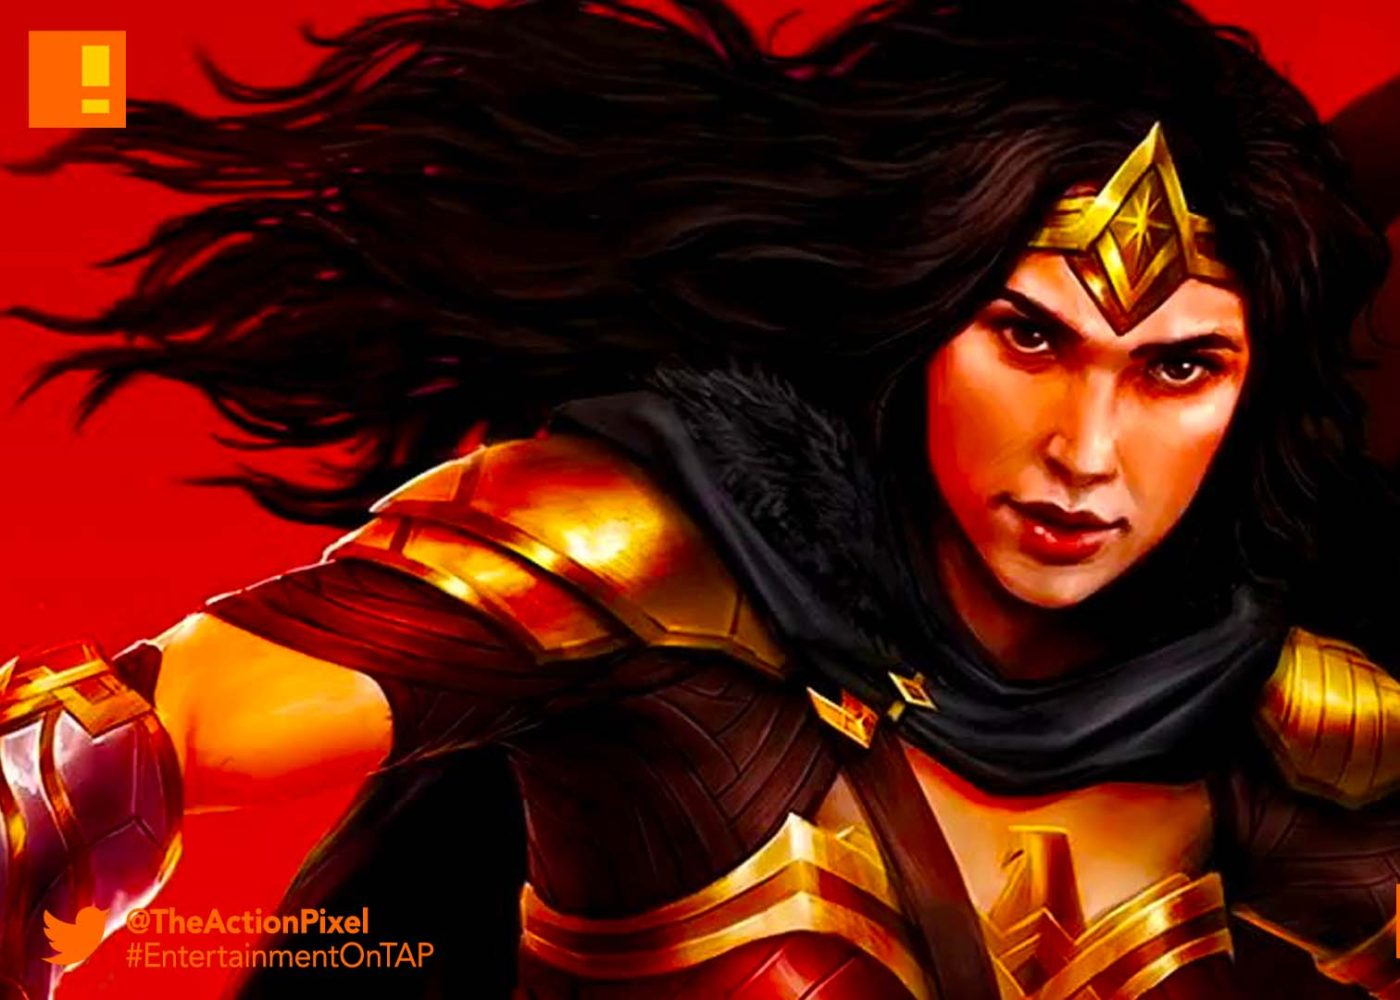 wonder woman, dc legends, the action pixel, dc comics, the action pixel, entertainment on tap